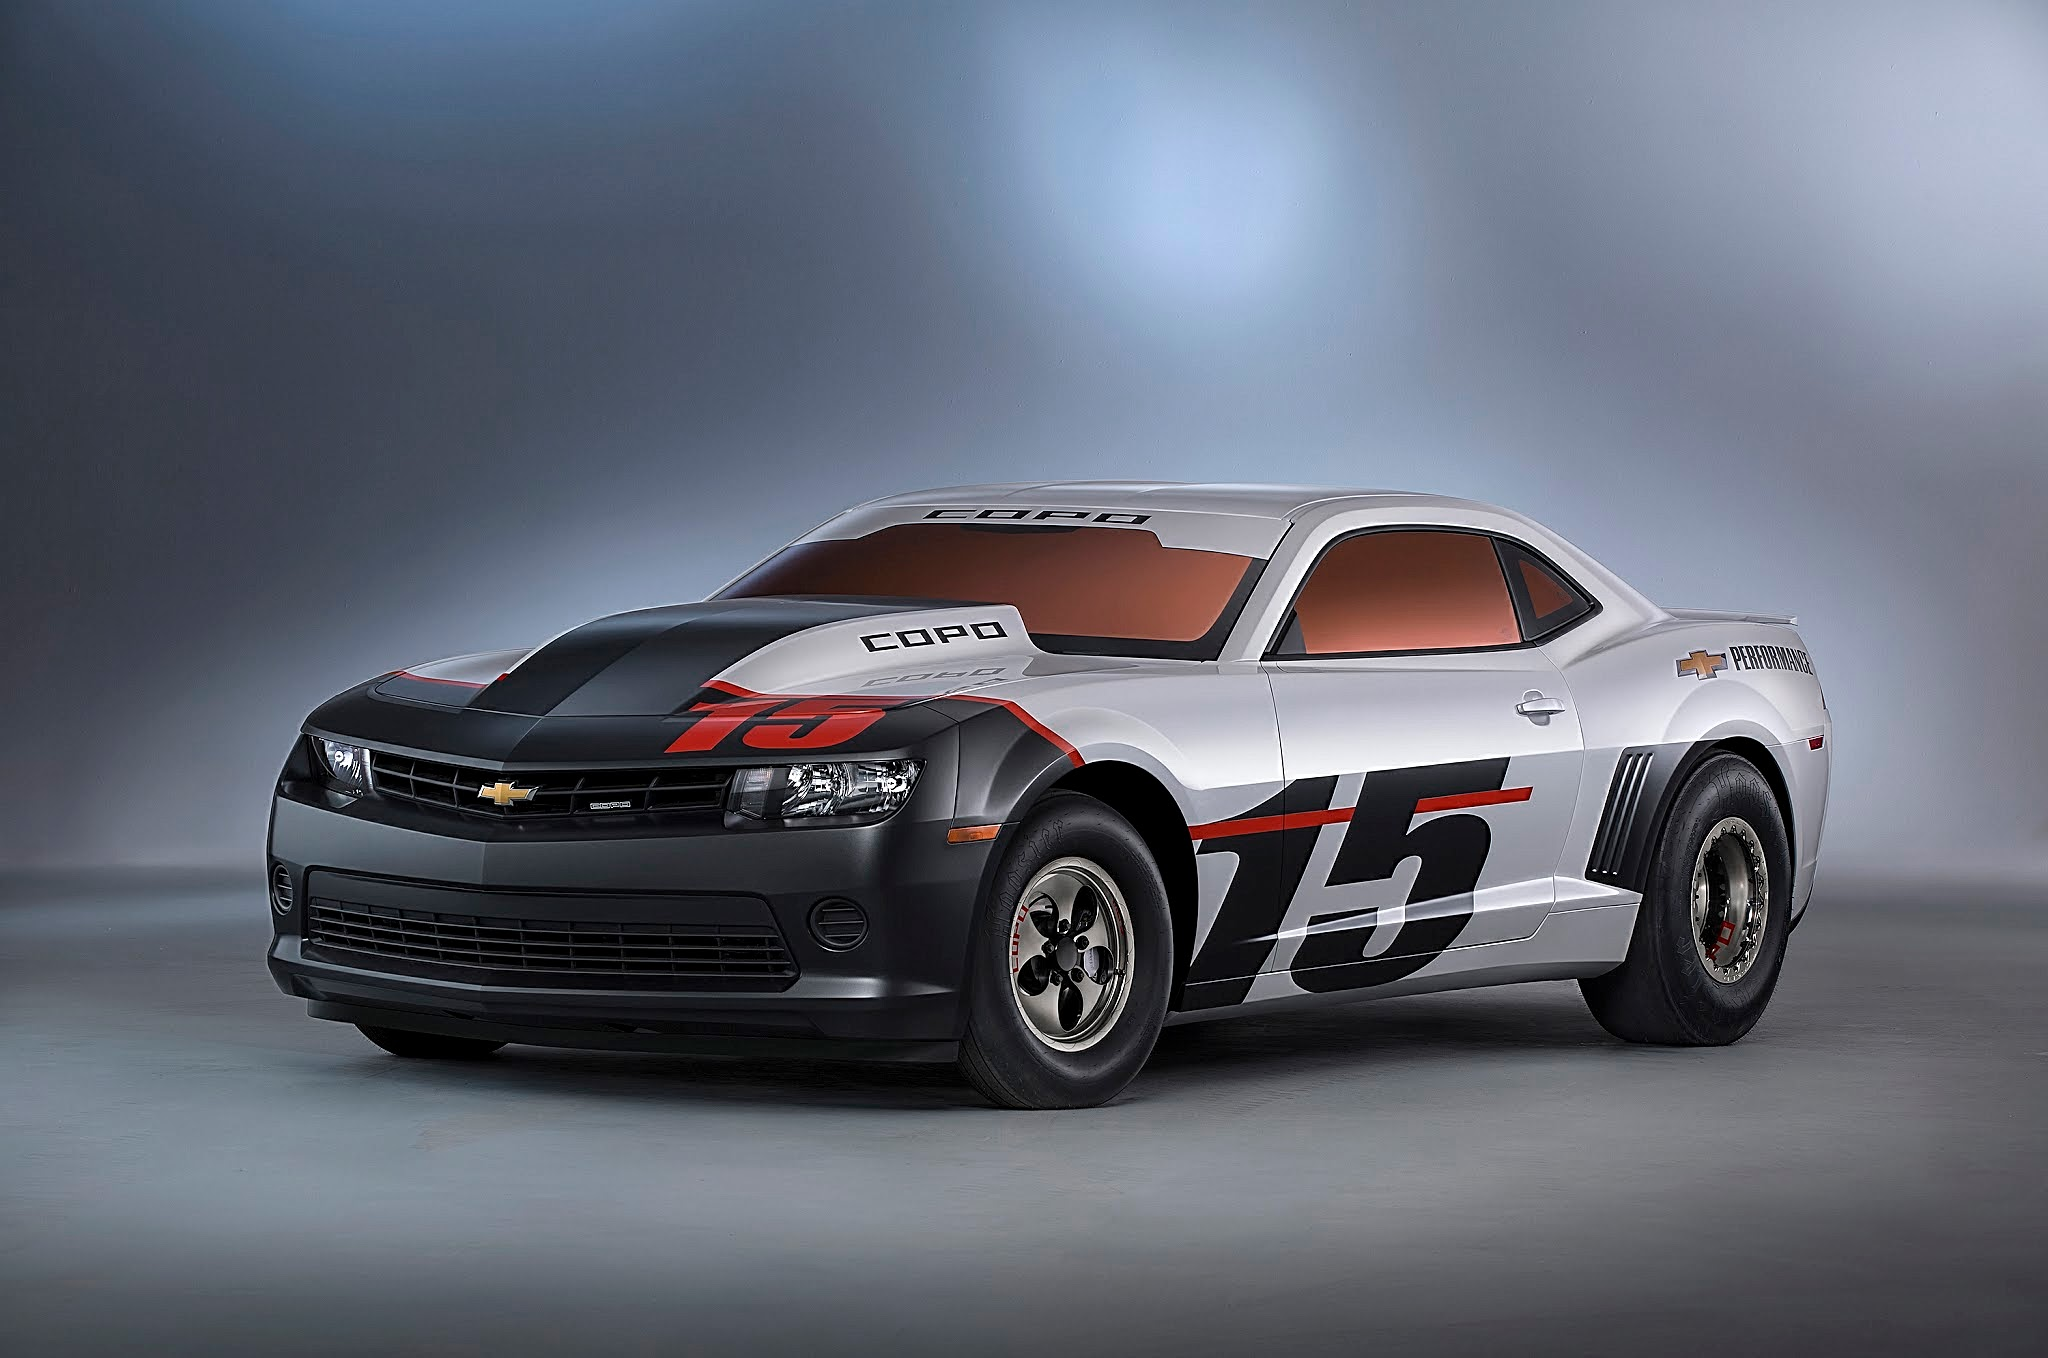 COPO Camaro No. 001 to be auctioned for charity Chevrolet is selling the firs...